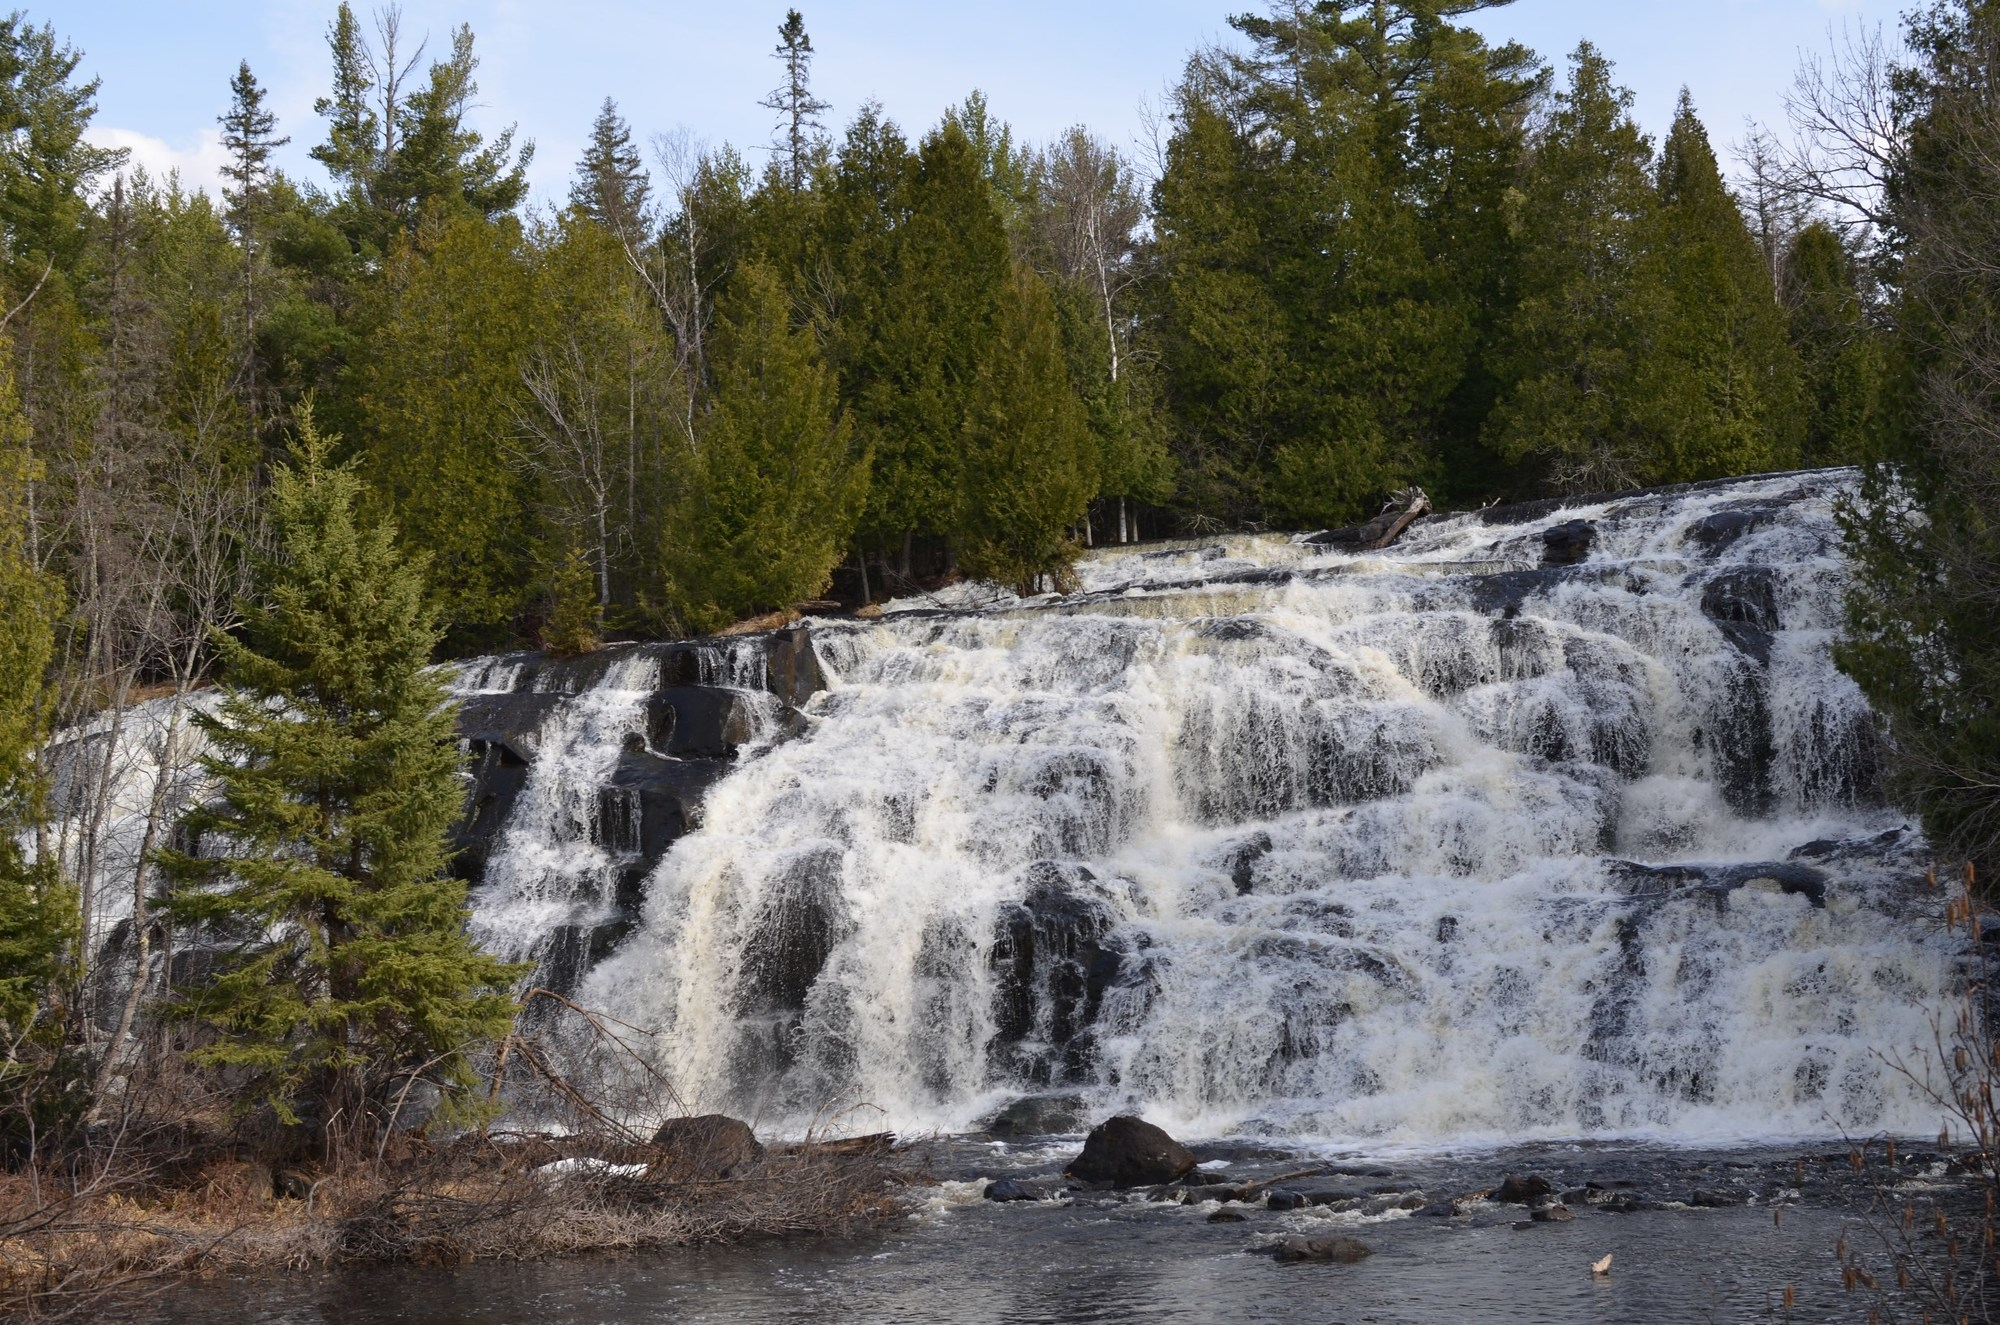 Bond Falls in Ontonagon County is a popular spot to sightsee when snowmobiling in the western Upper Peninsula.